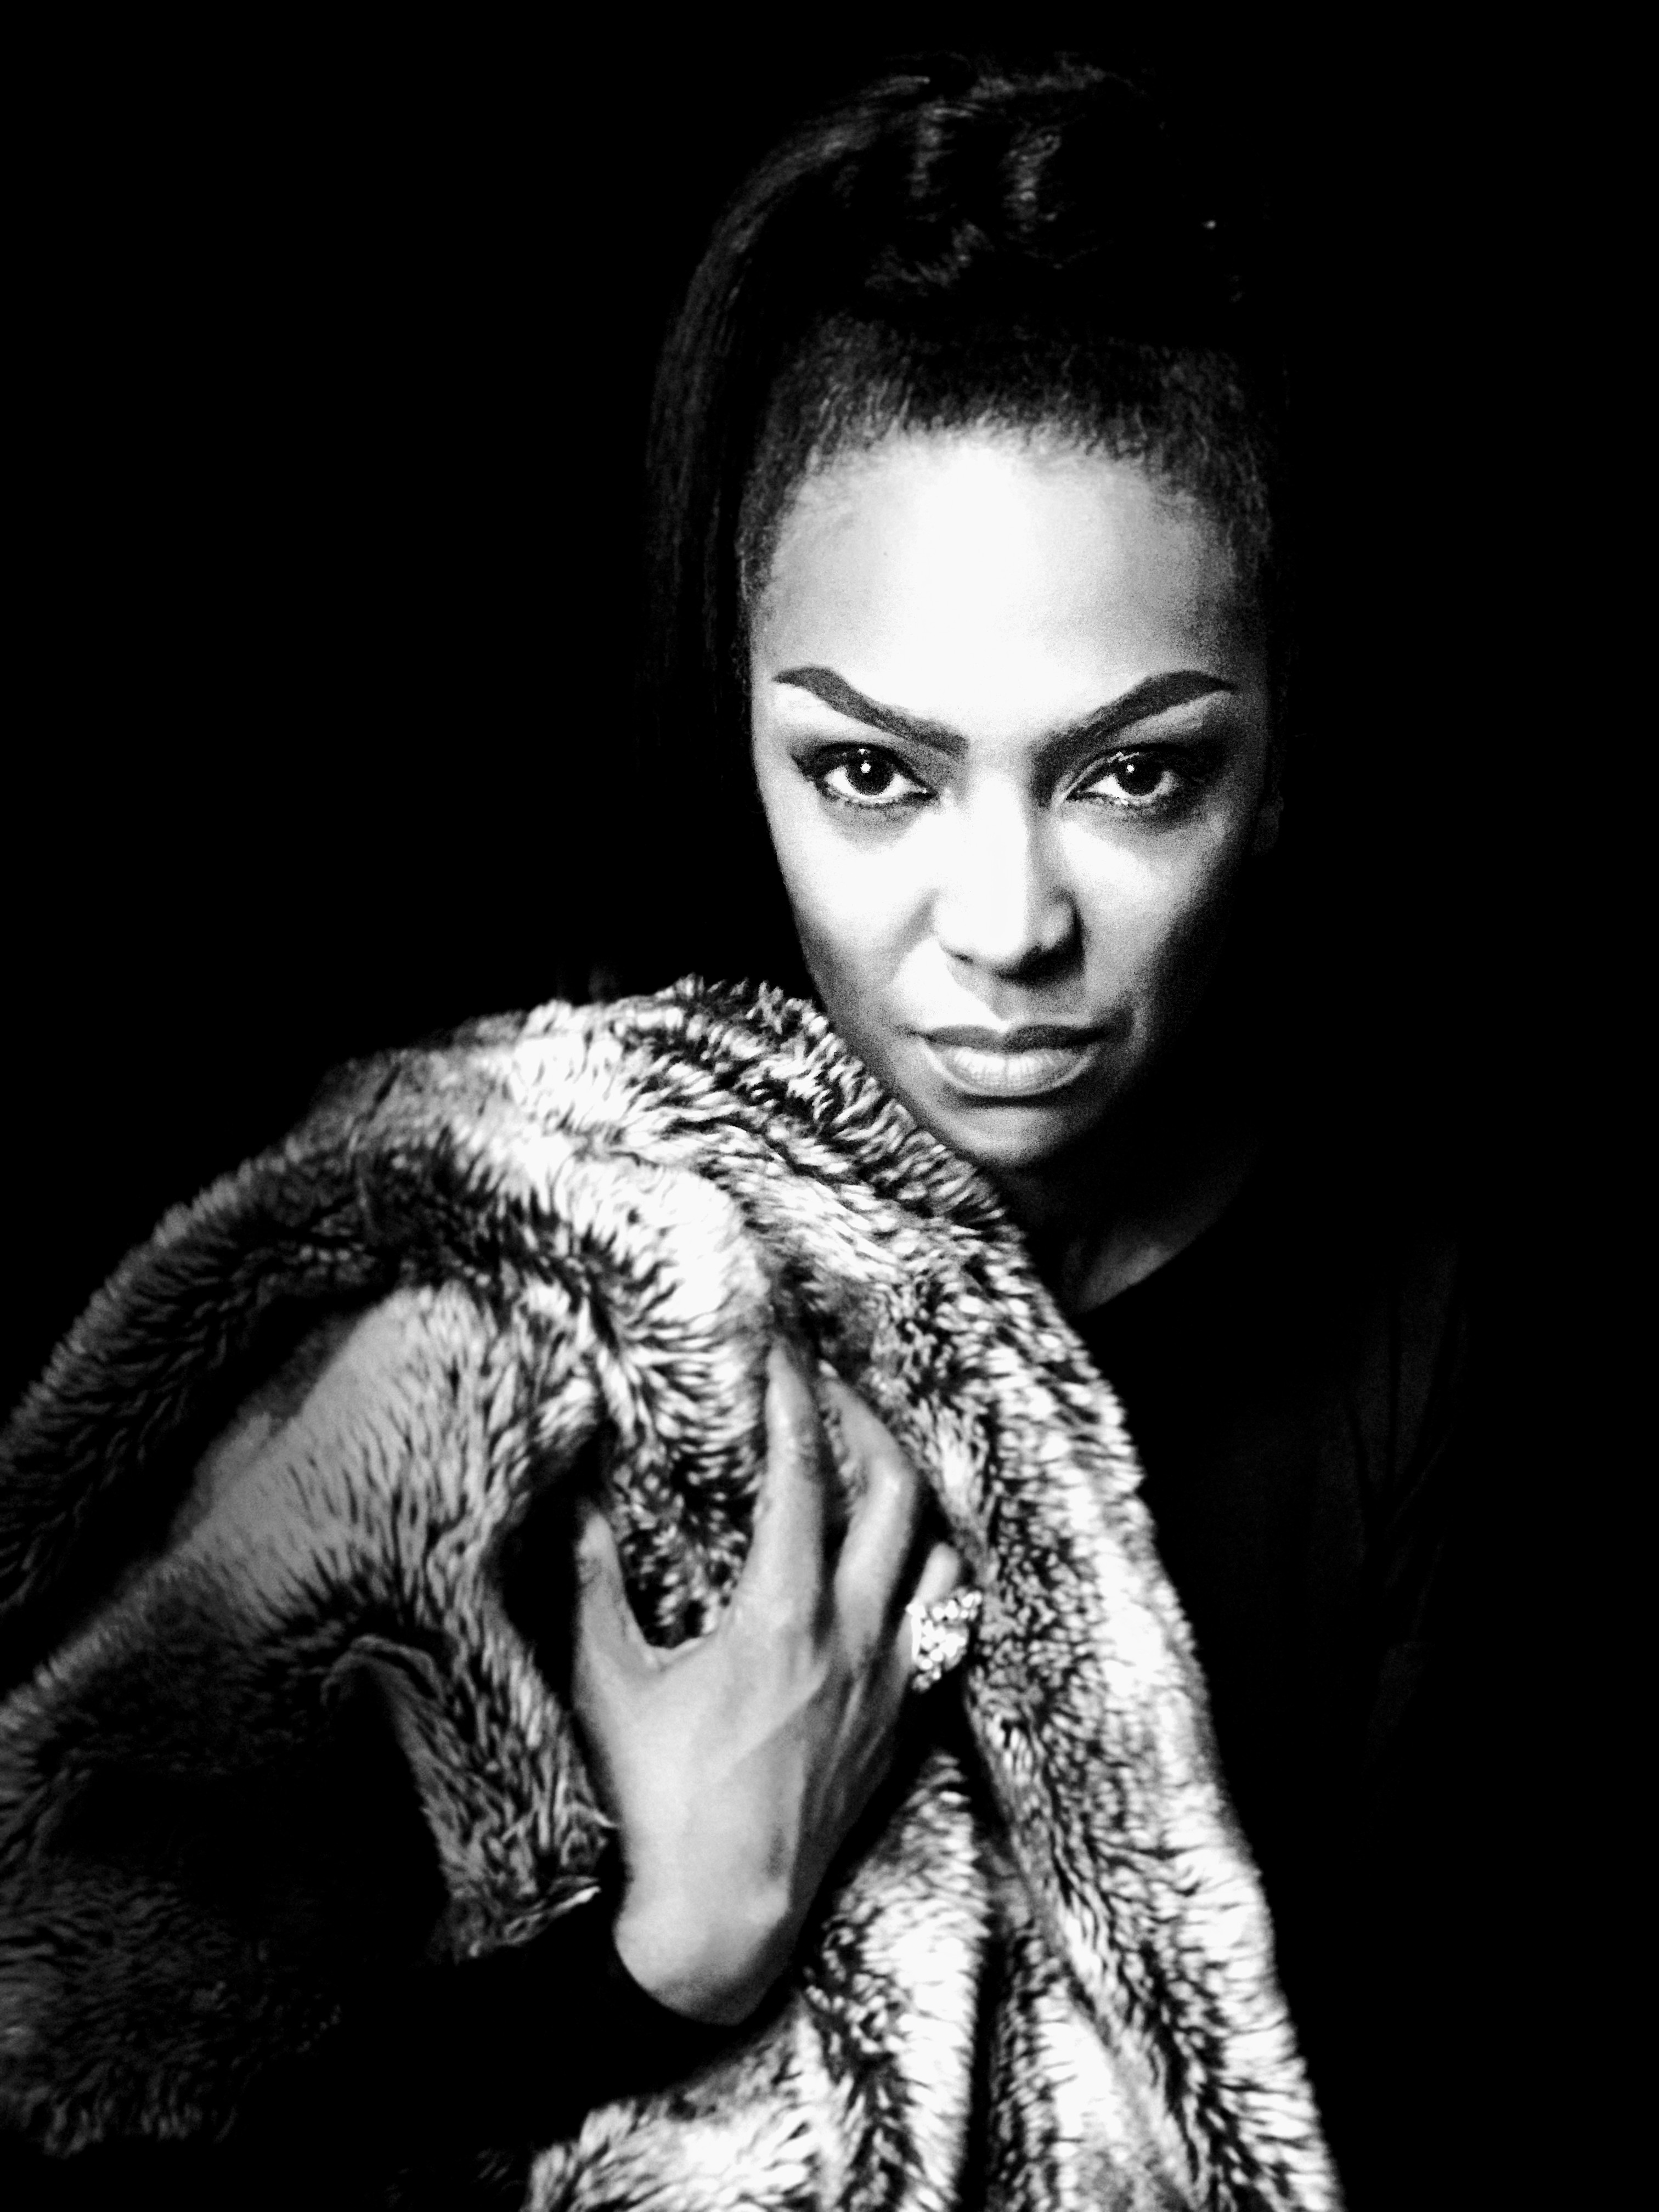 DOWN TO EARTHA – The Life Of A Star, On And Off Stage